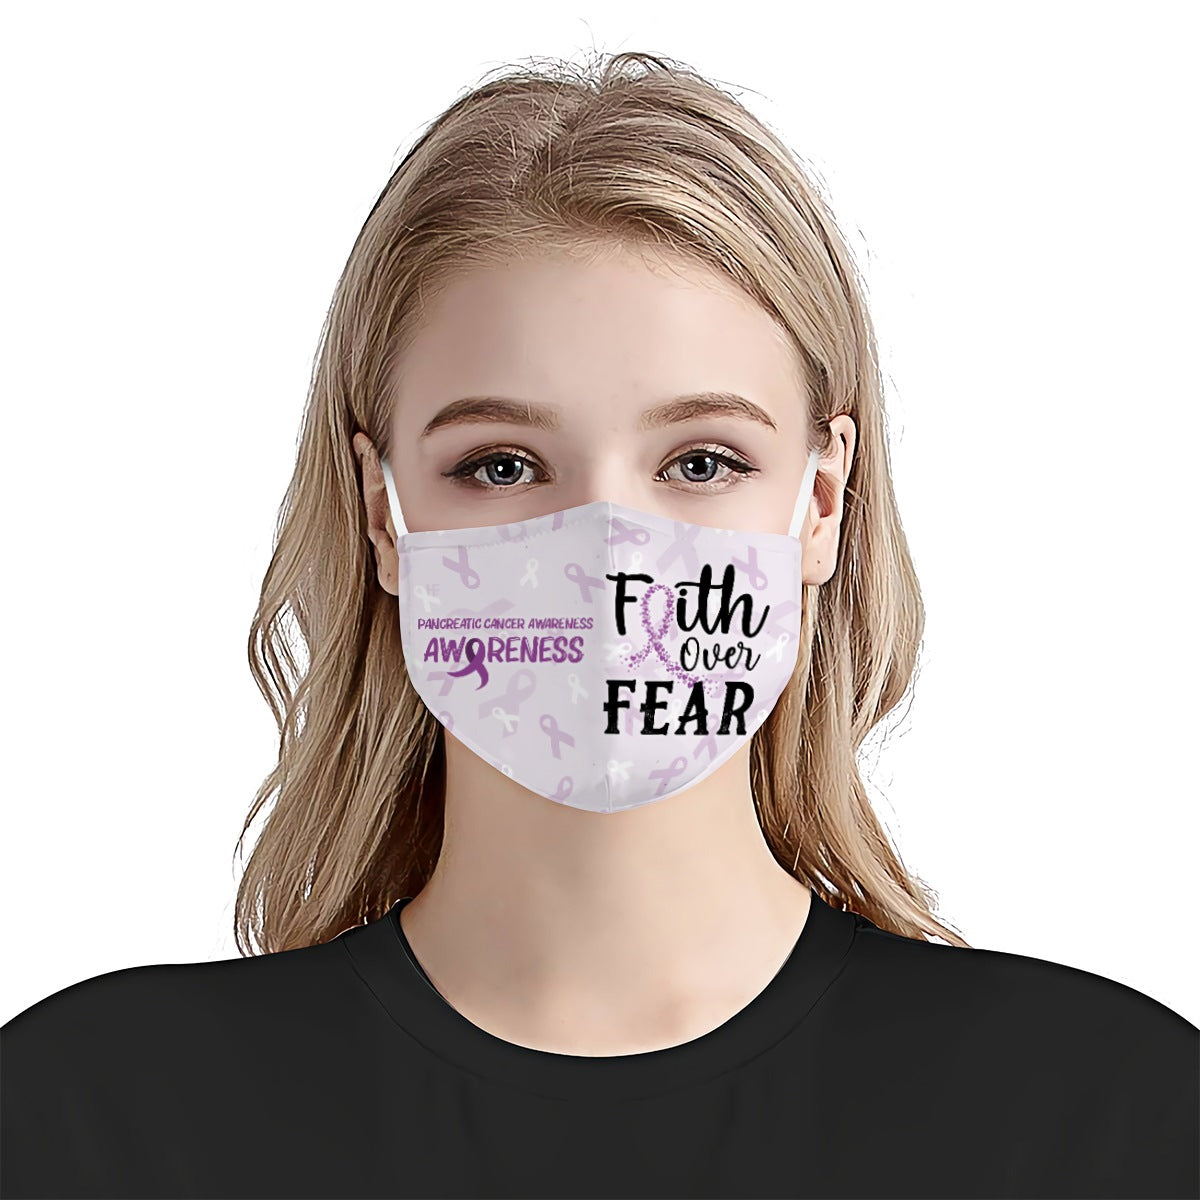 Pancreatic Cancer Awareness Faith Over Fear EZ01 2904 Face Mask - Hyperfavor